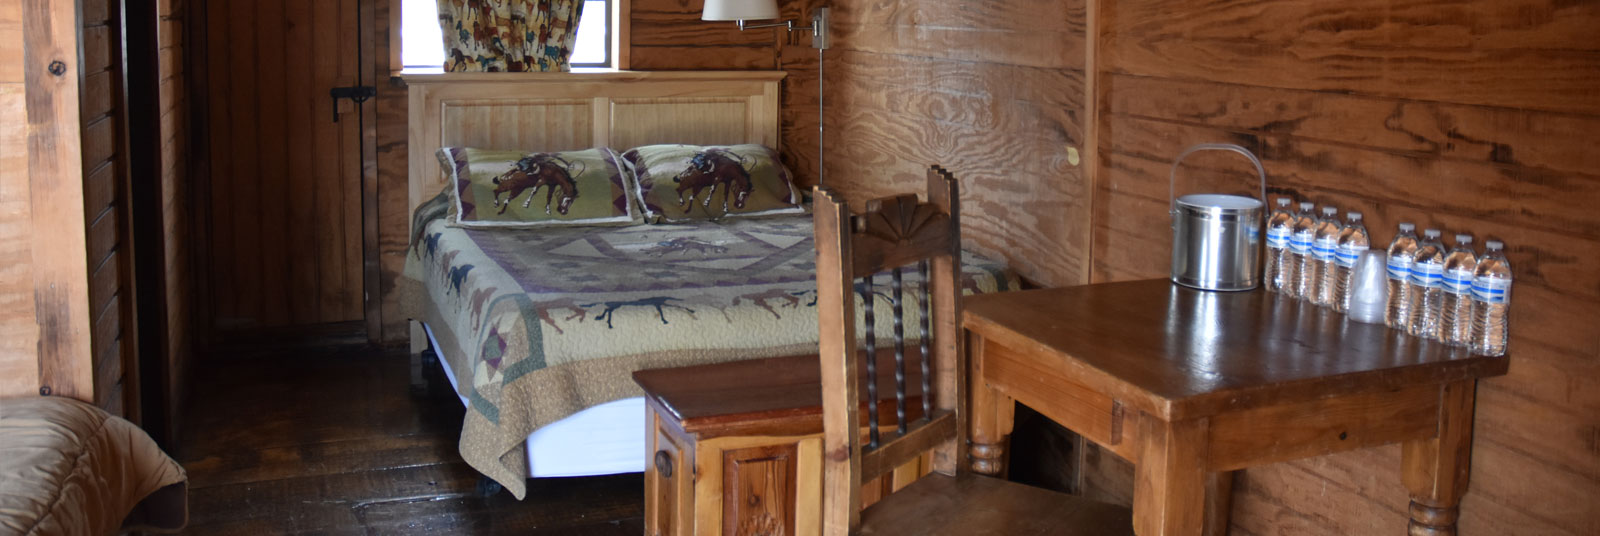 Grand Canyon Western Ranch on